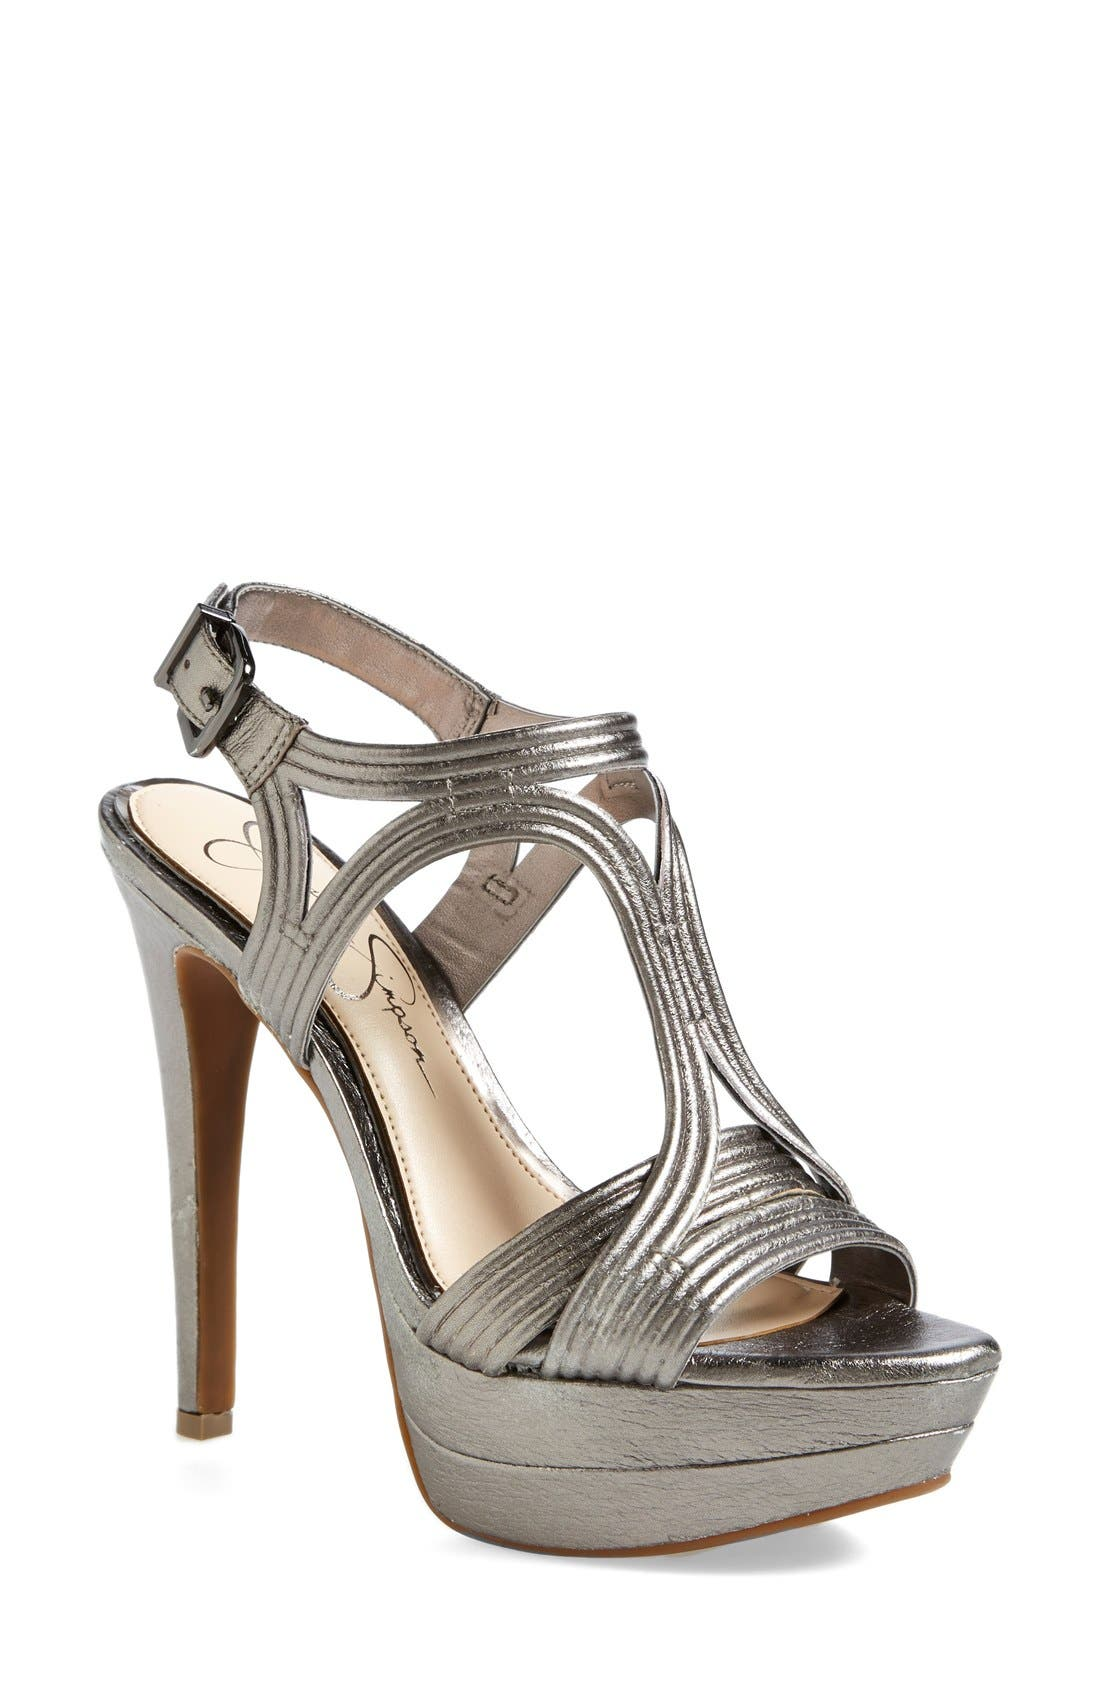 Alternate Image 1 Selected - Jessica Simpson 'Salemm' Platform Sandal (Women)